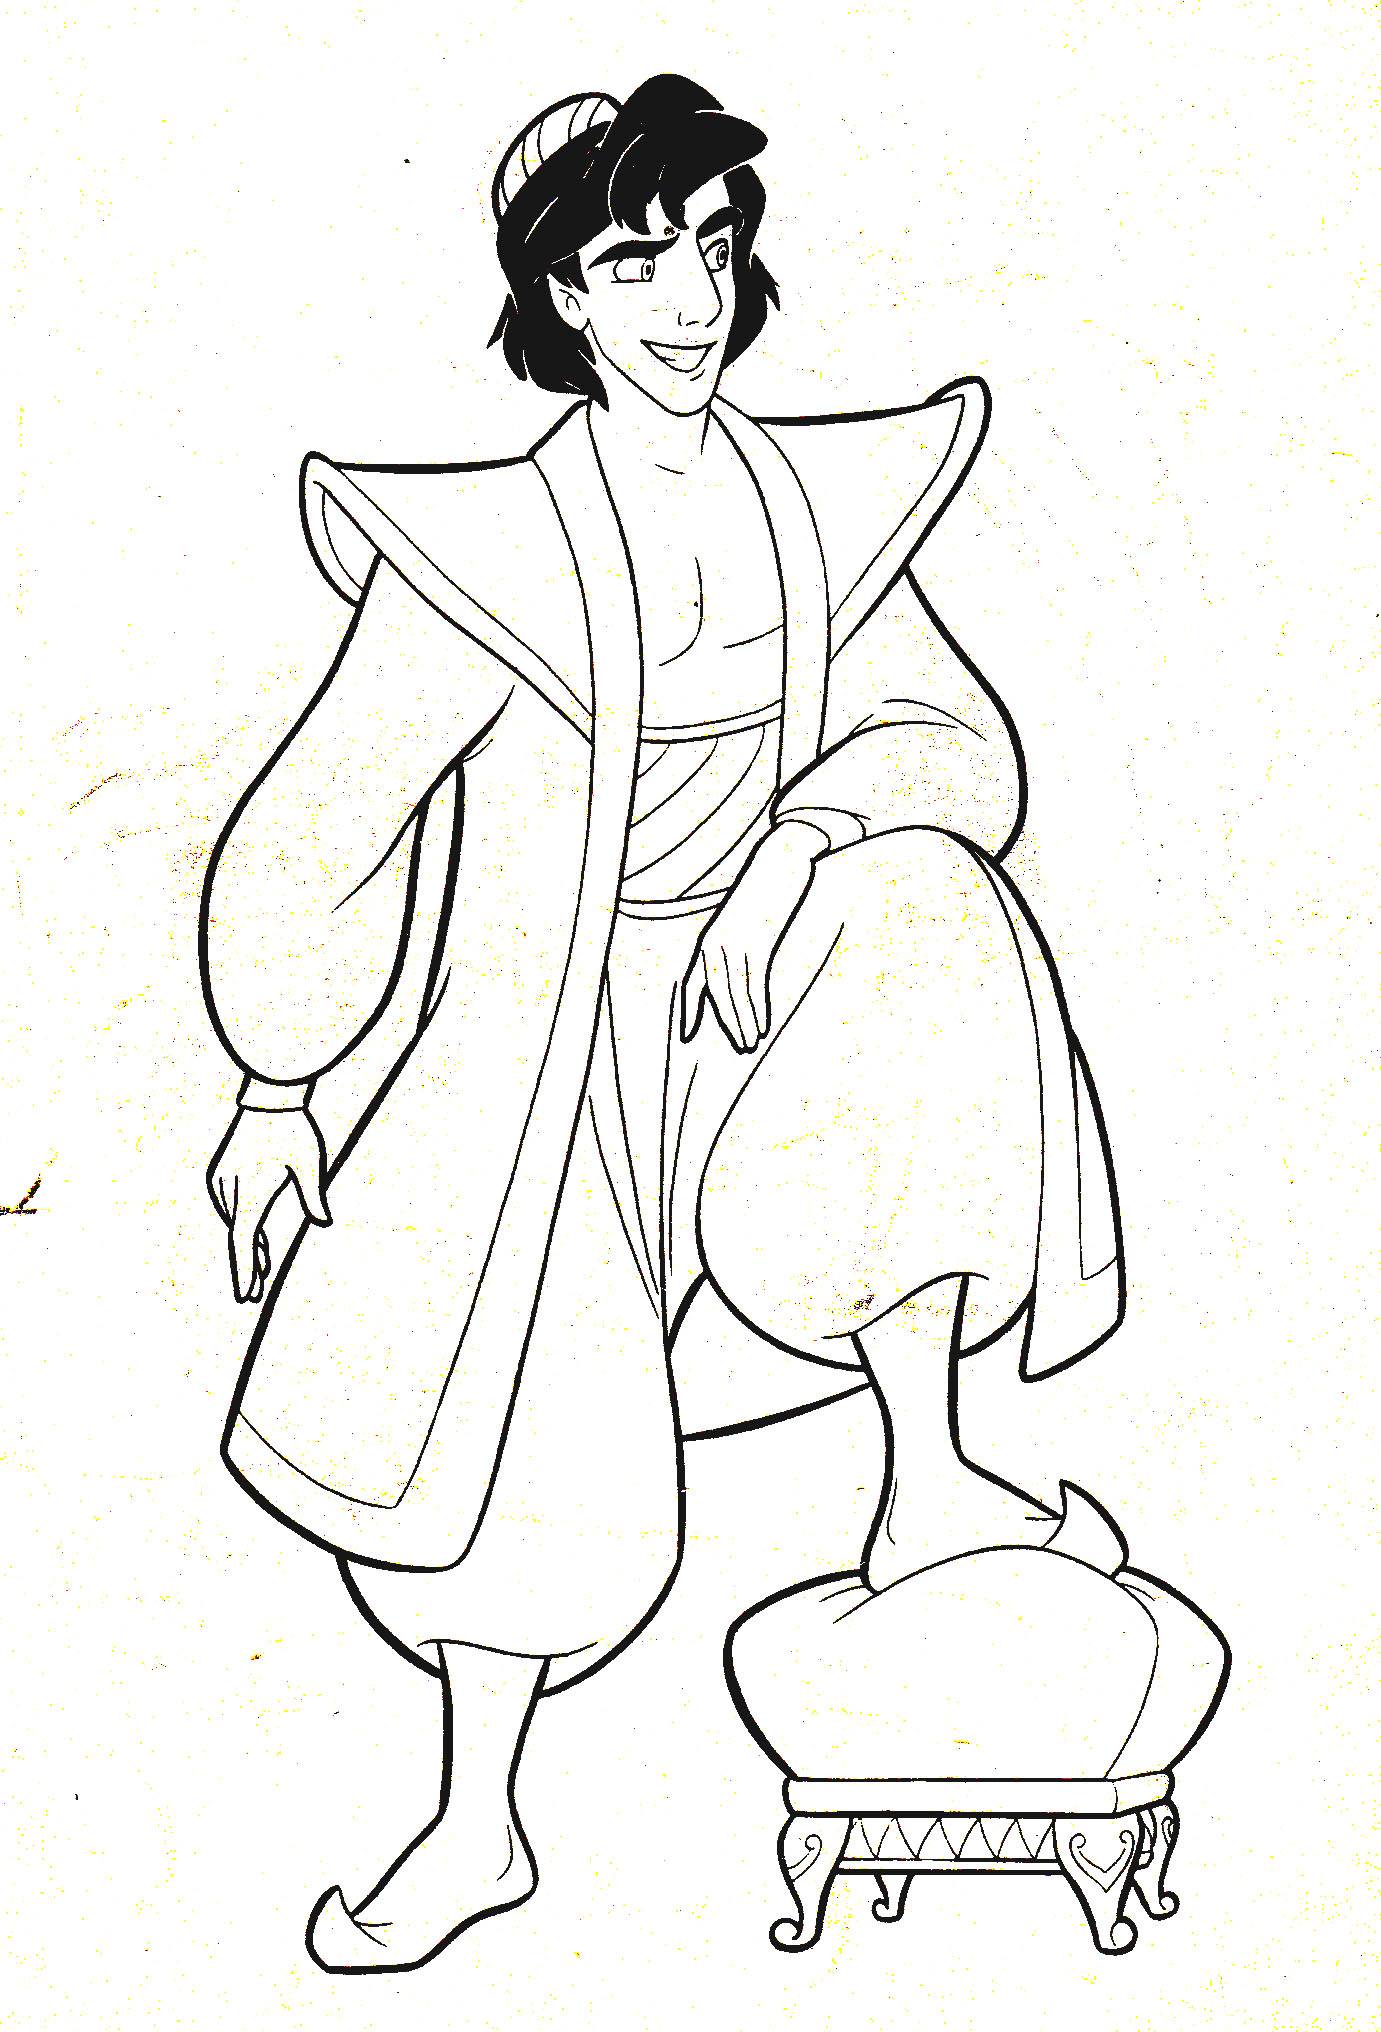 Aladdin-Free-Coloring-Pages